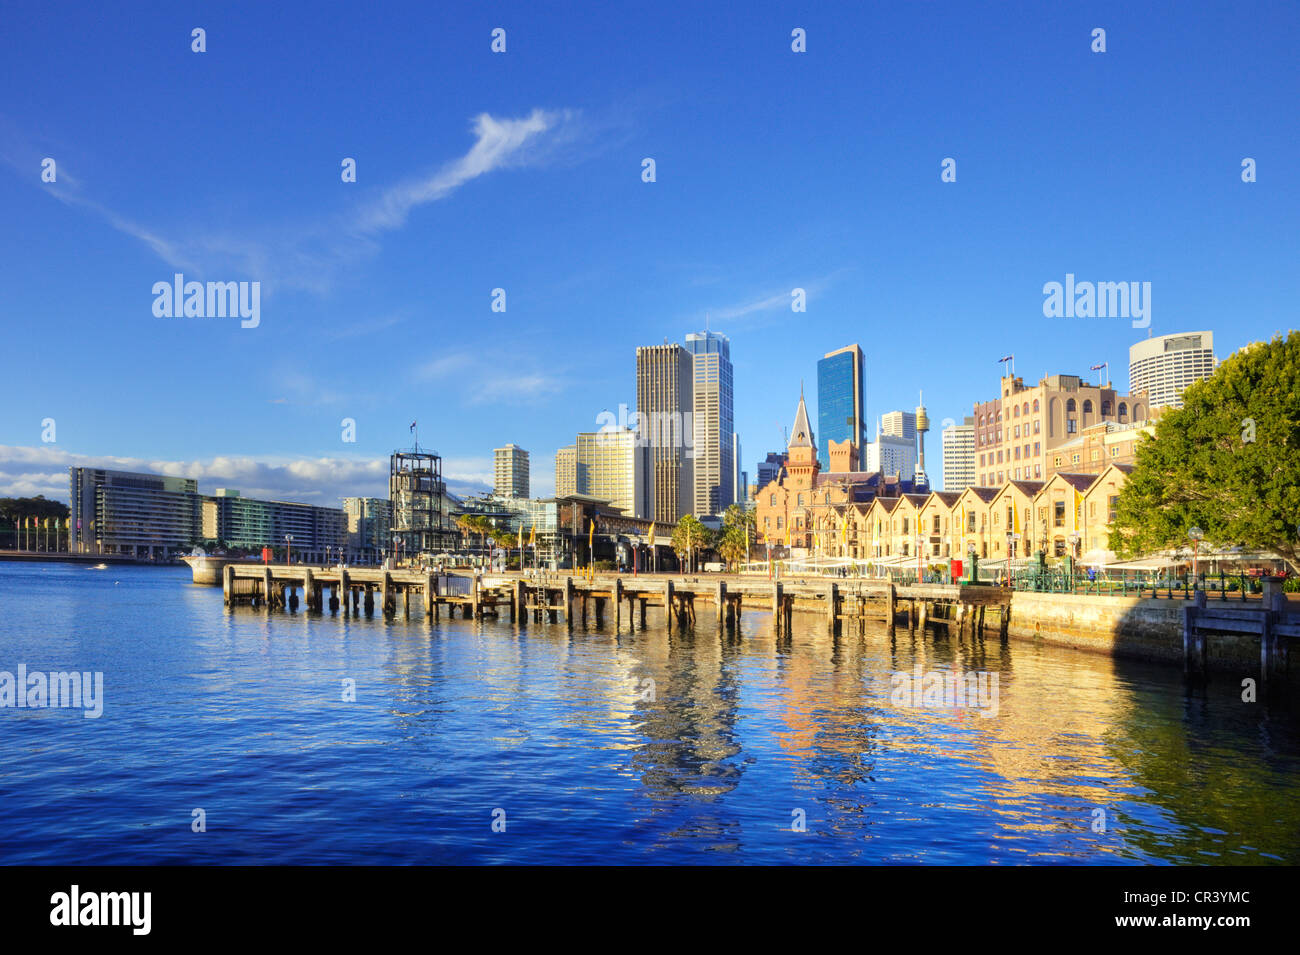 HDR shot of a beautiful sunny morning in Sydney, Australia, with Circular Quay and The Rocks. - Stock Image